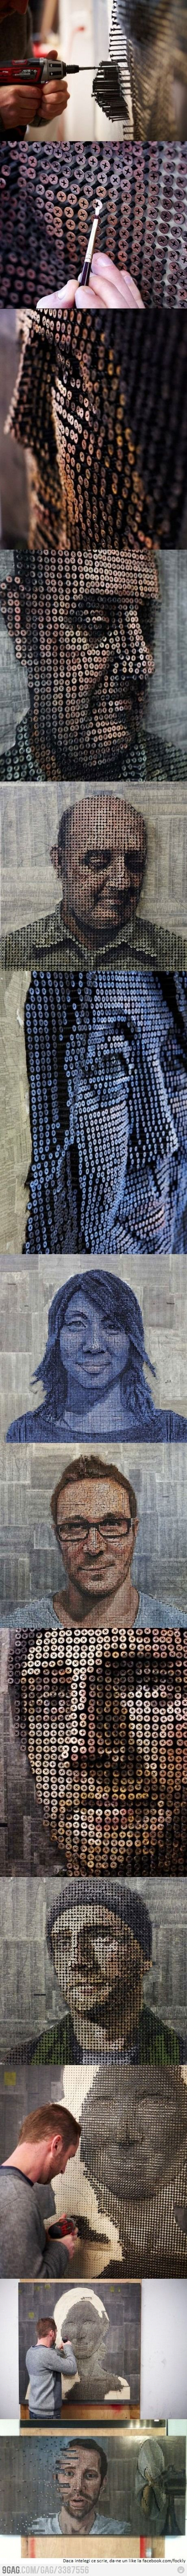 Relief portraits made out of screws by Andrew Myers